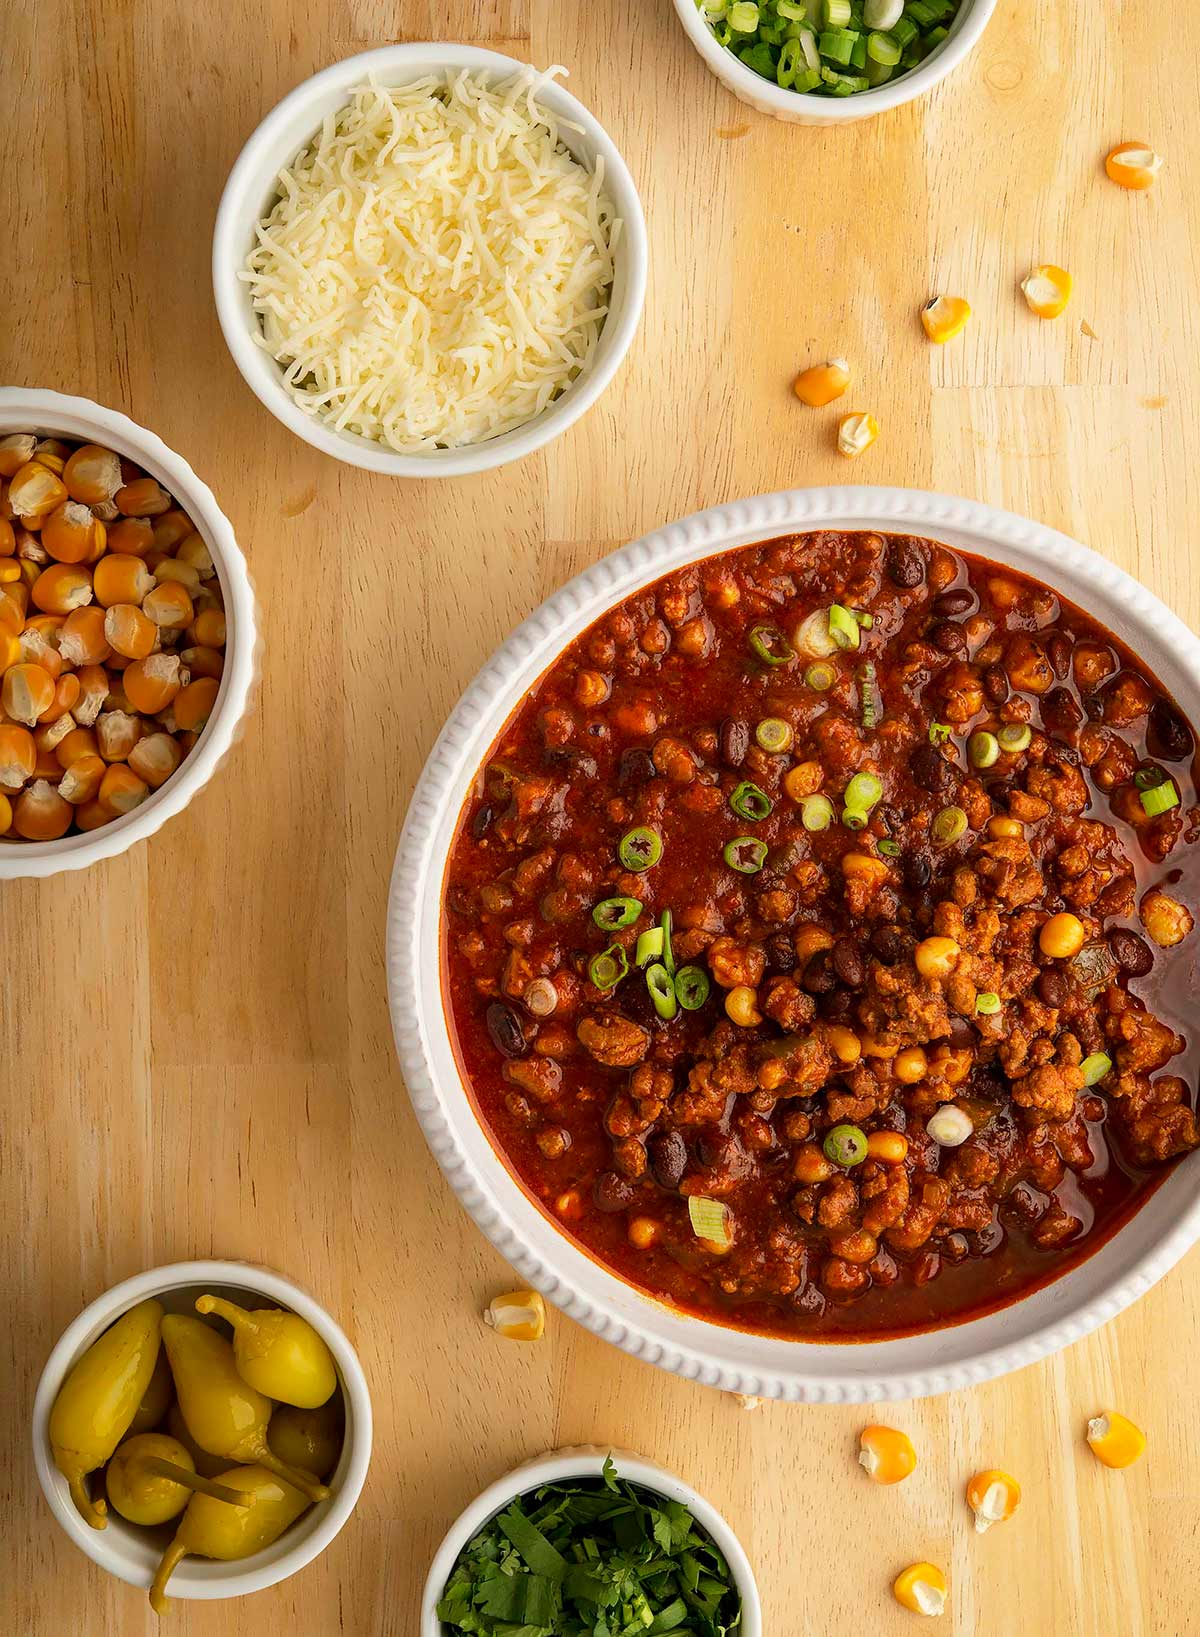 A bowl of turkey black bean chili with toppings